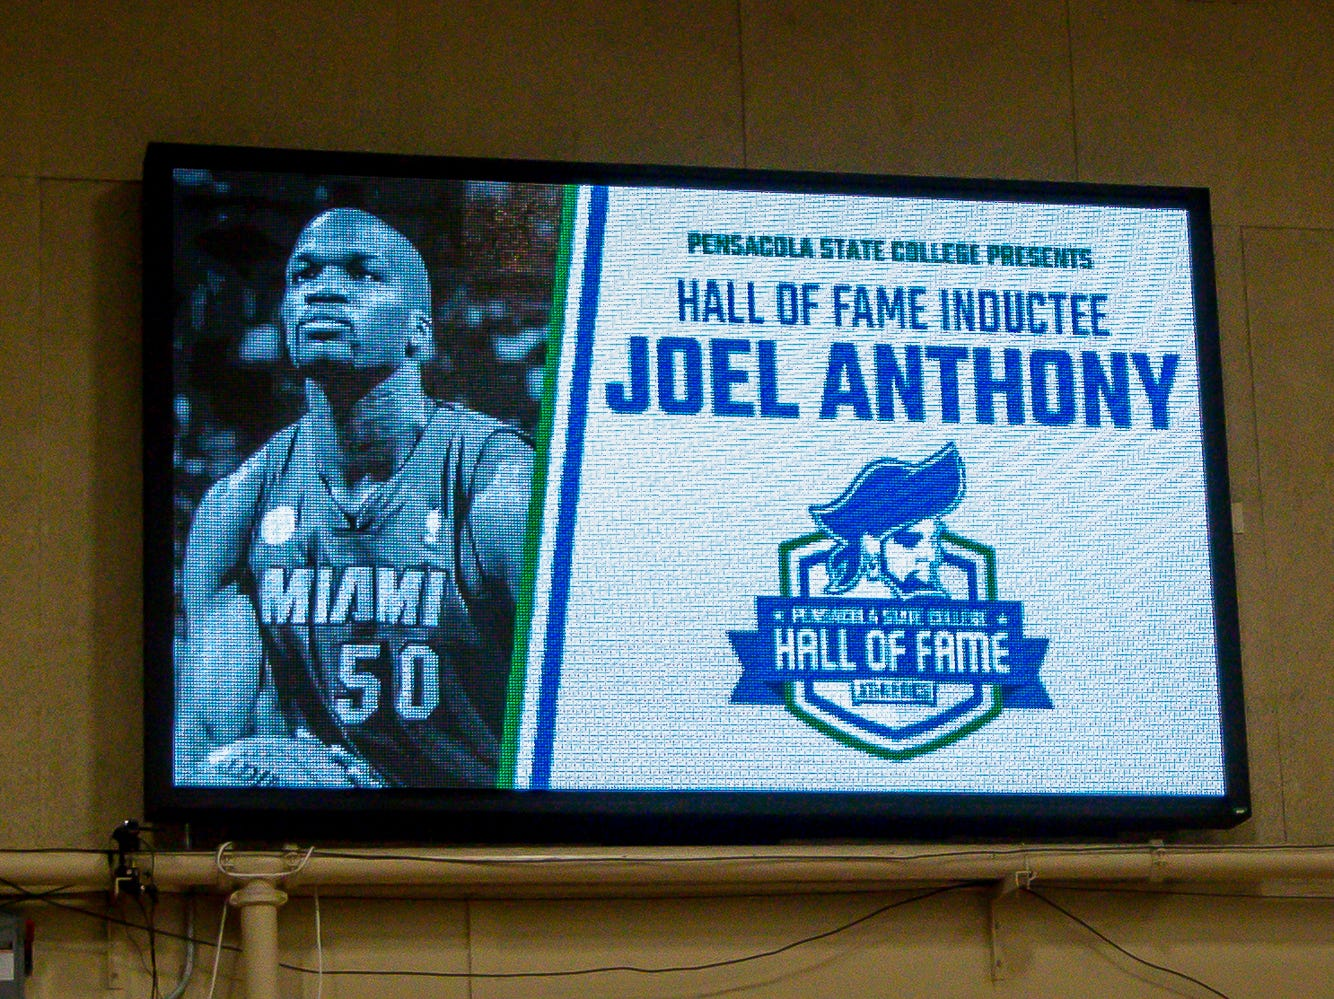 Joel Anthony is honored during Pensacola State College's inaugural Athletics Hall of Fame induction ceremony on Saturday, February 16, 2019, in the Hartsell Arena on the main campus. He was a member of the basketball team from 2002-04 and won two NBA championships as a member of the Miami Heat. He currently plays basketball for Argentina's San Lorenzo de Almagro basketball club league and was unable to attend the ceremony.